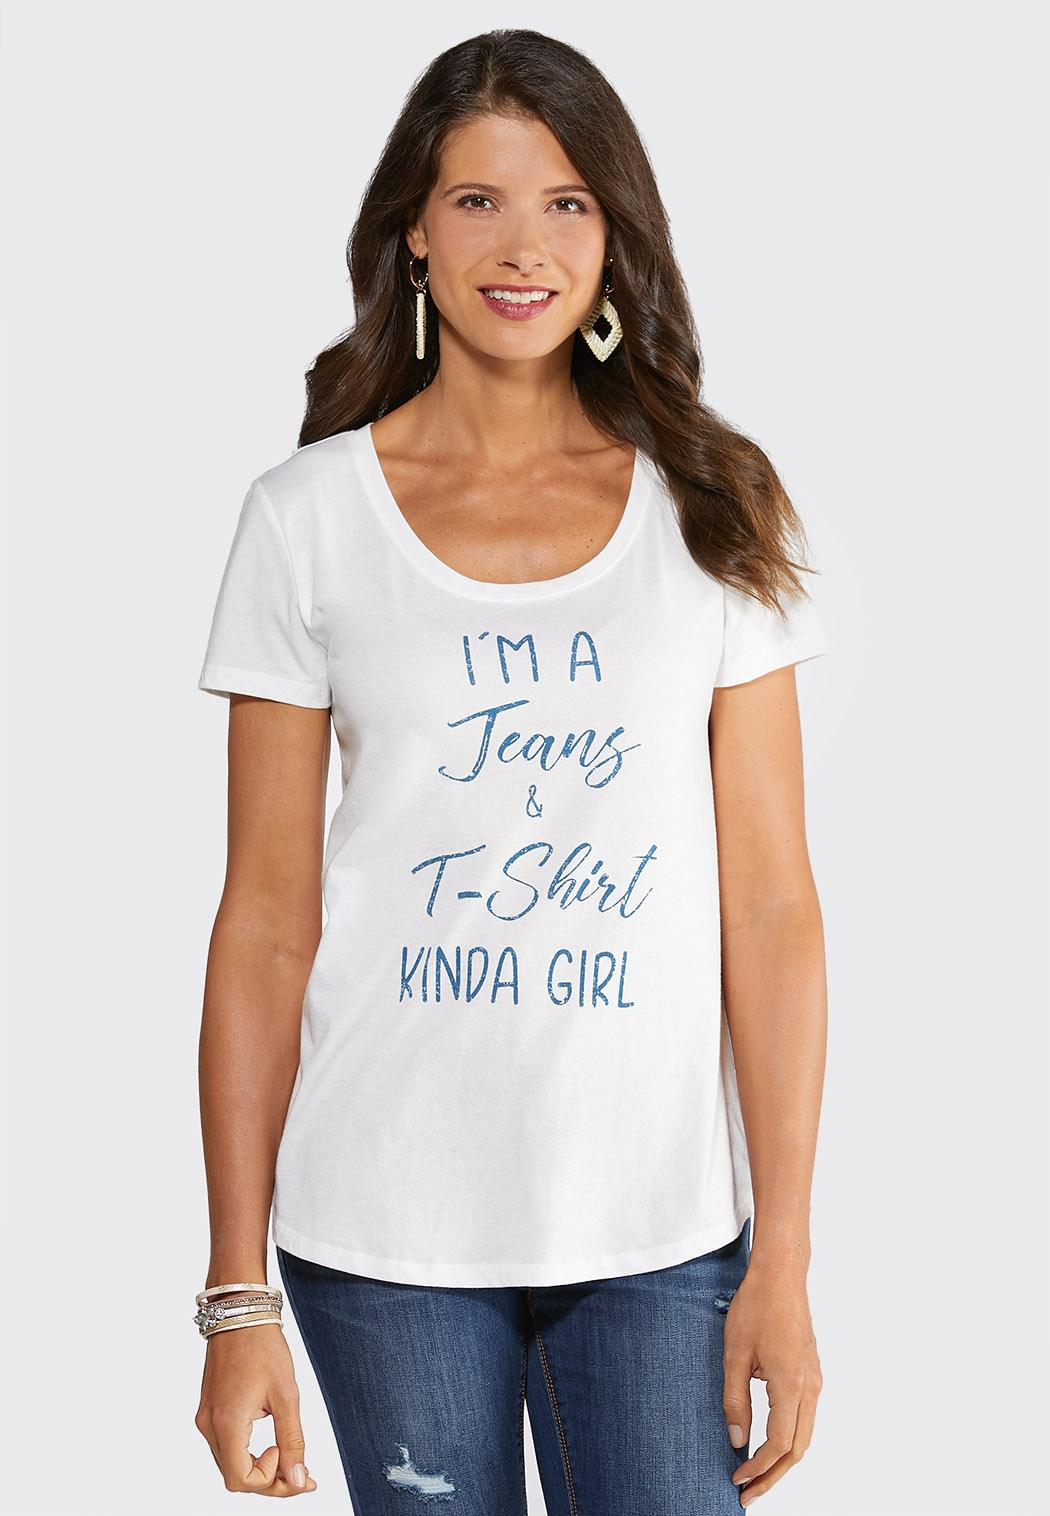 Plus Size Jeans and T-Shirt Girl Tee